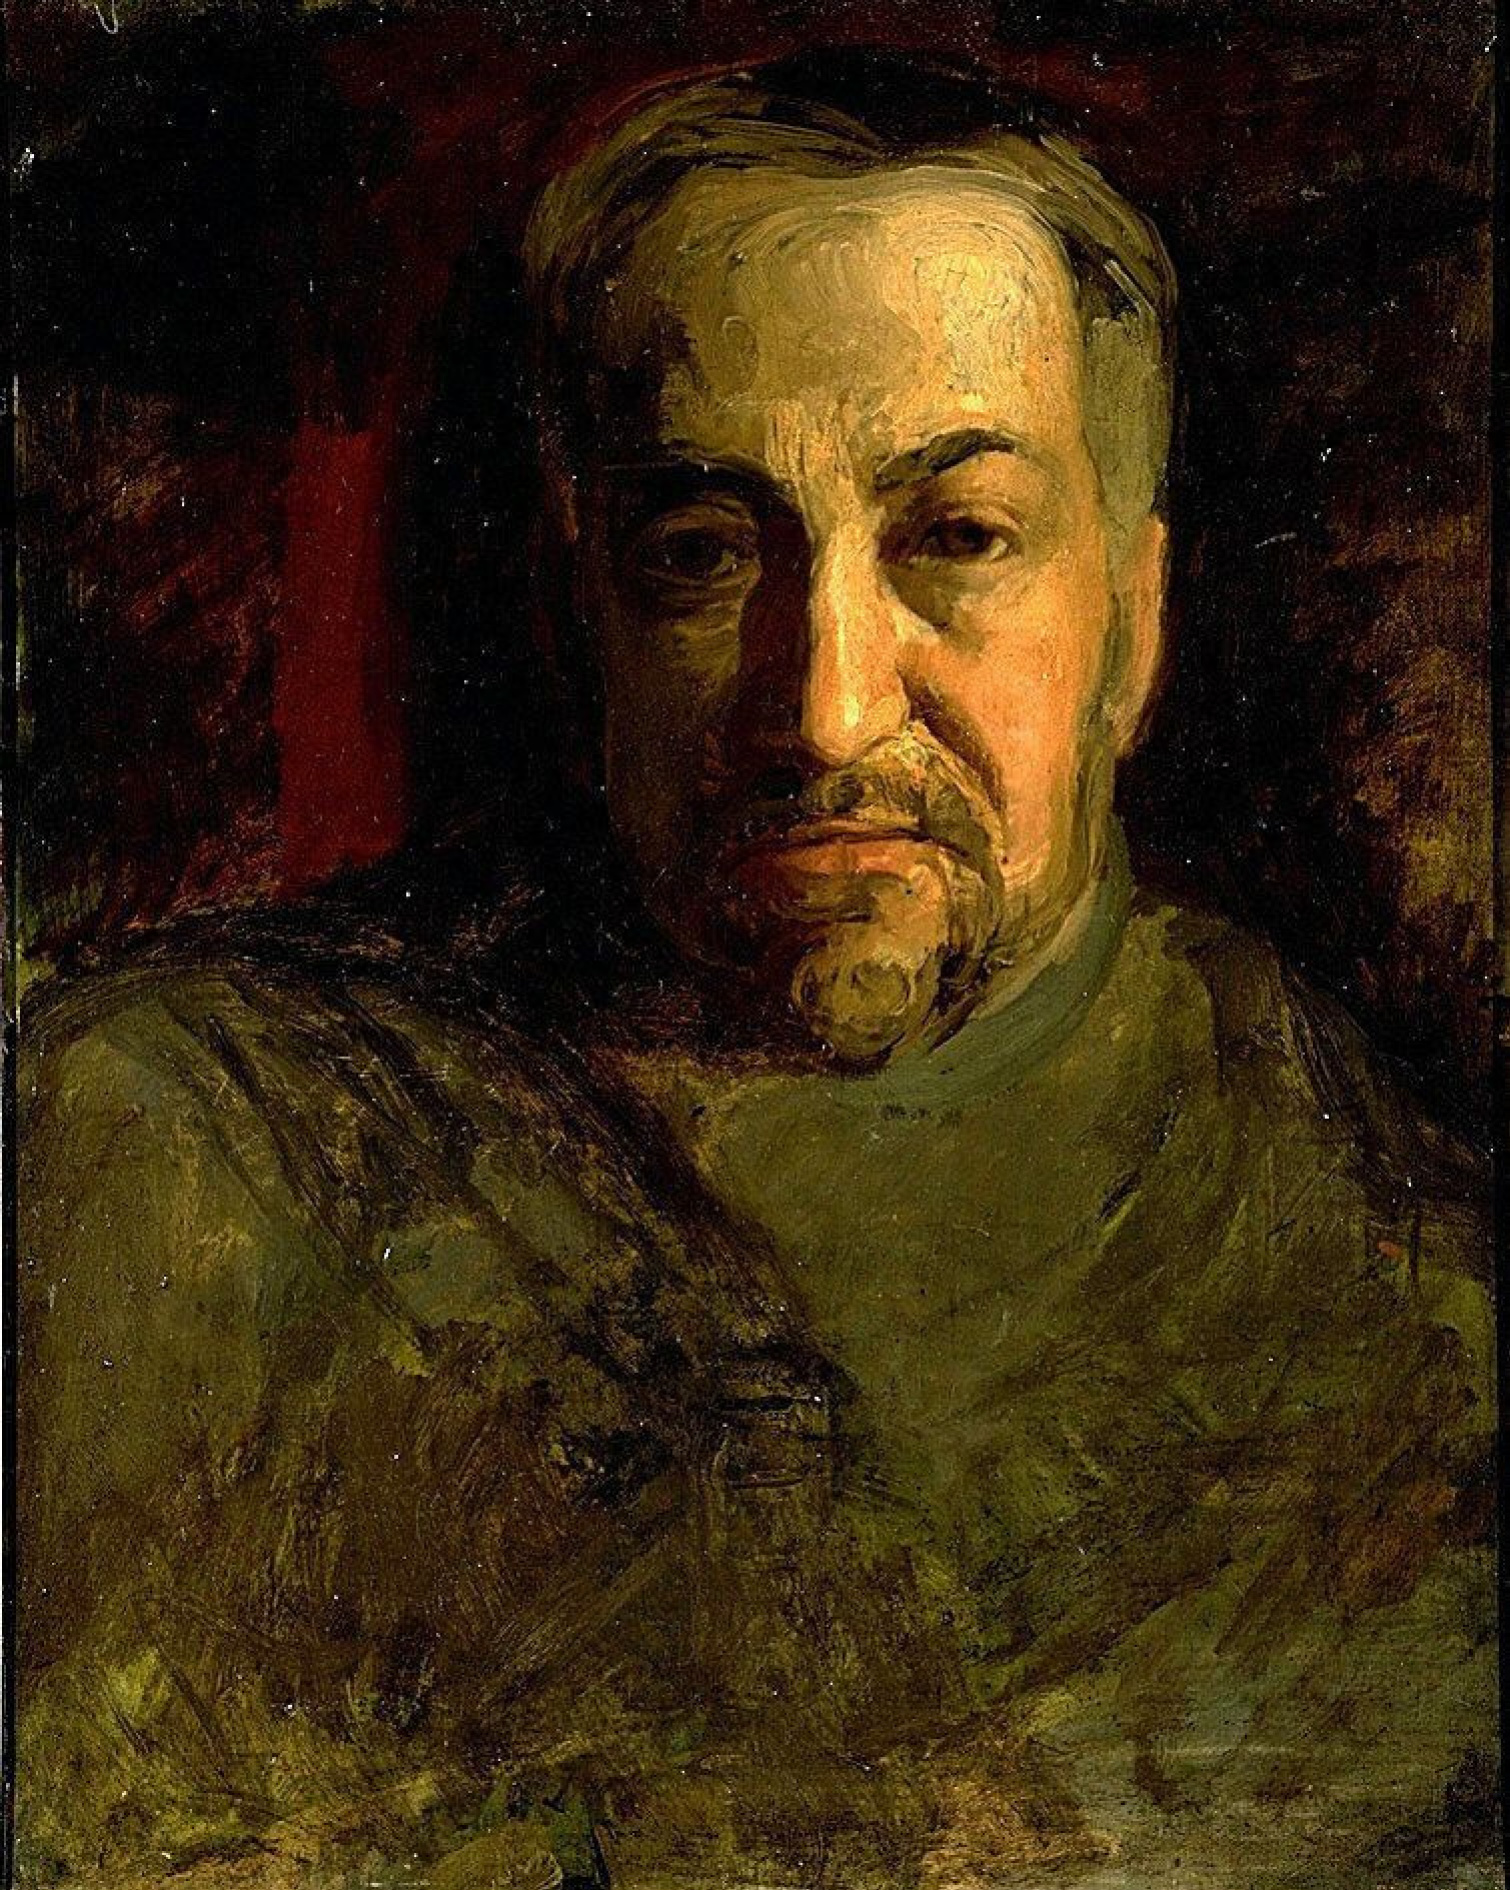 Thomas Eakins. Self-portrait